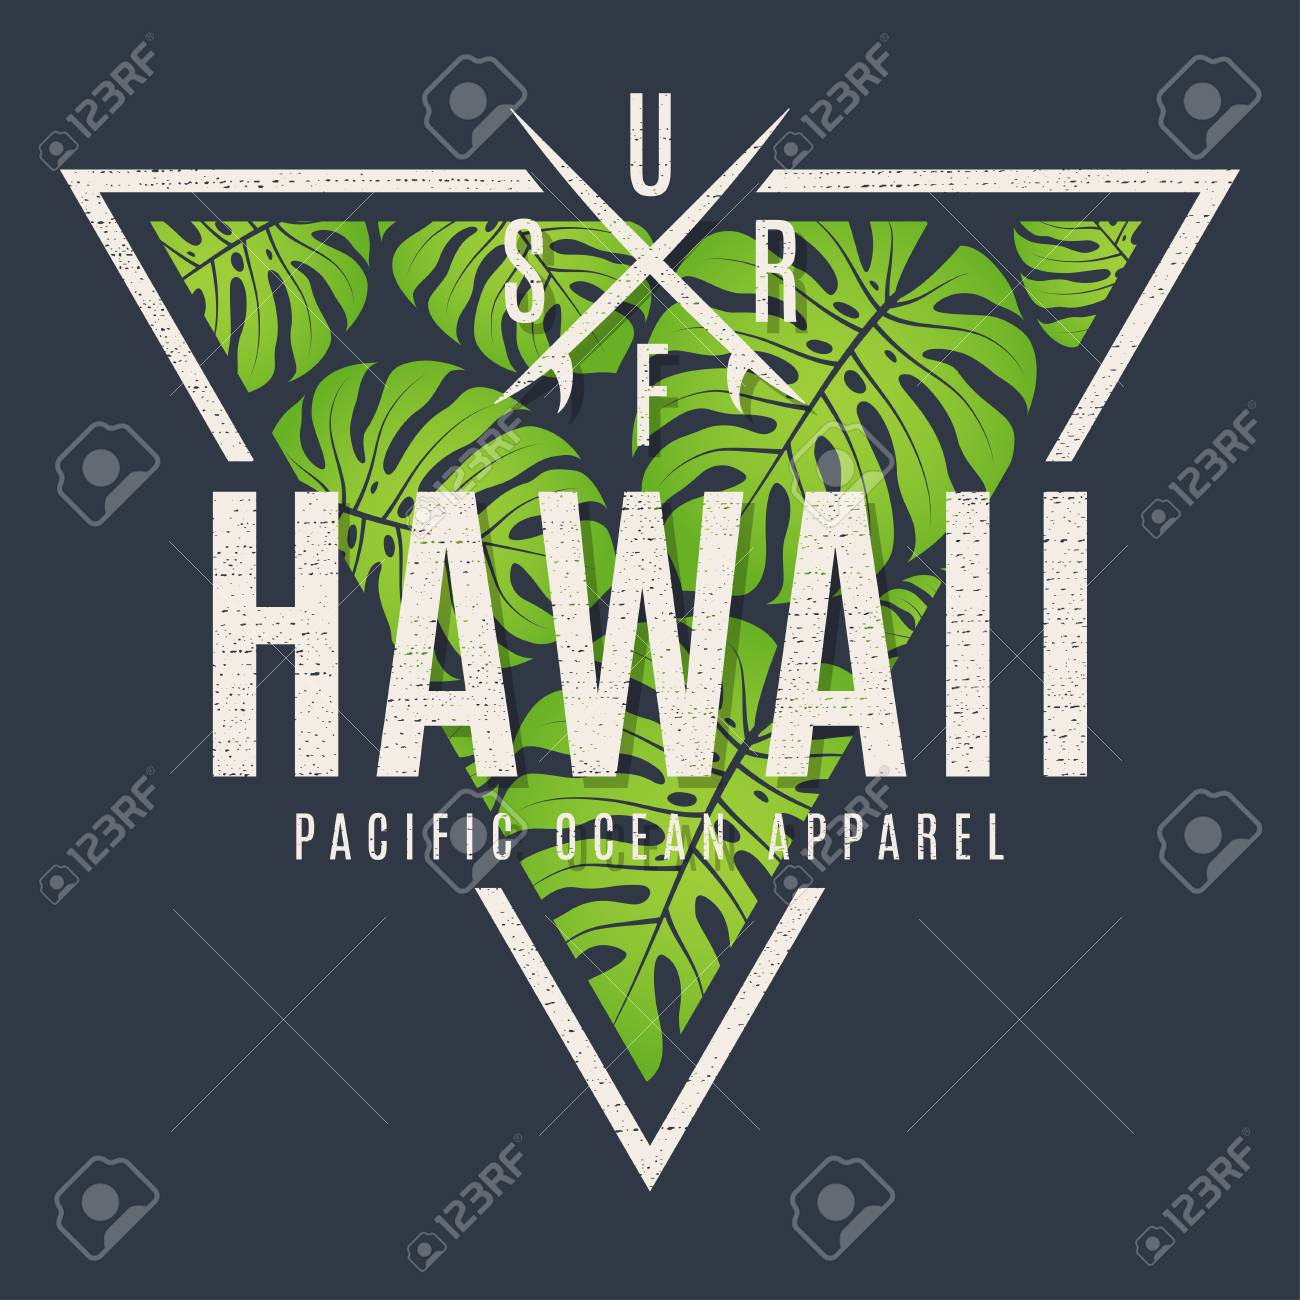 Hawaii tee print with with tropical leaves - 80443185